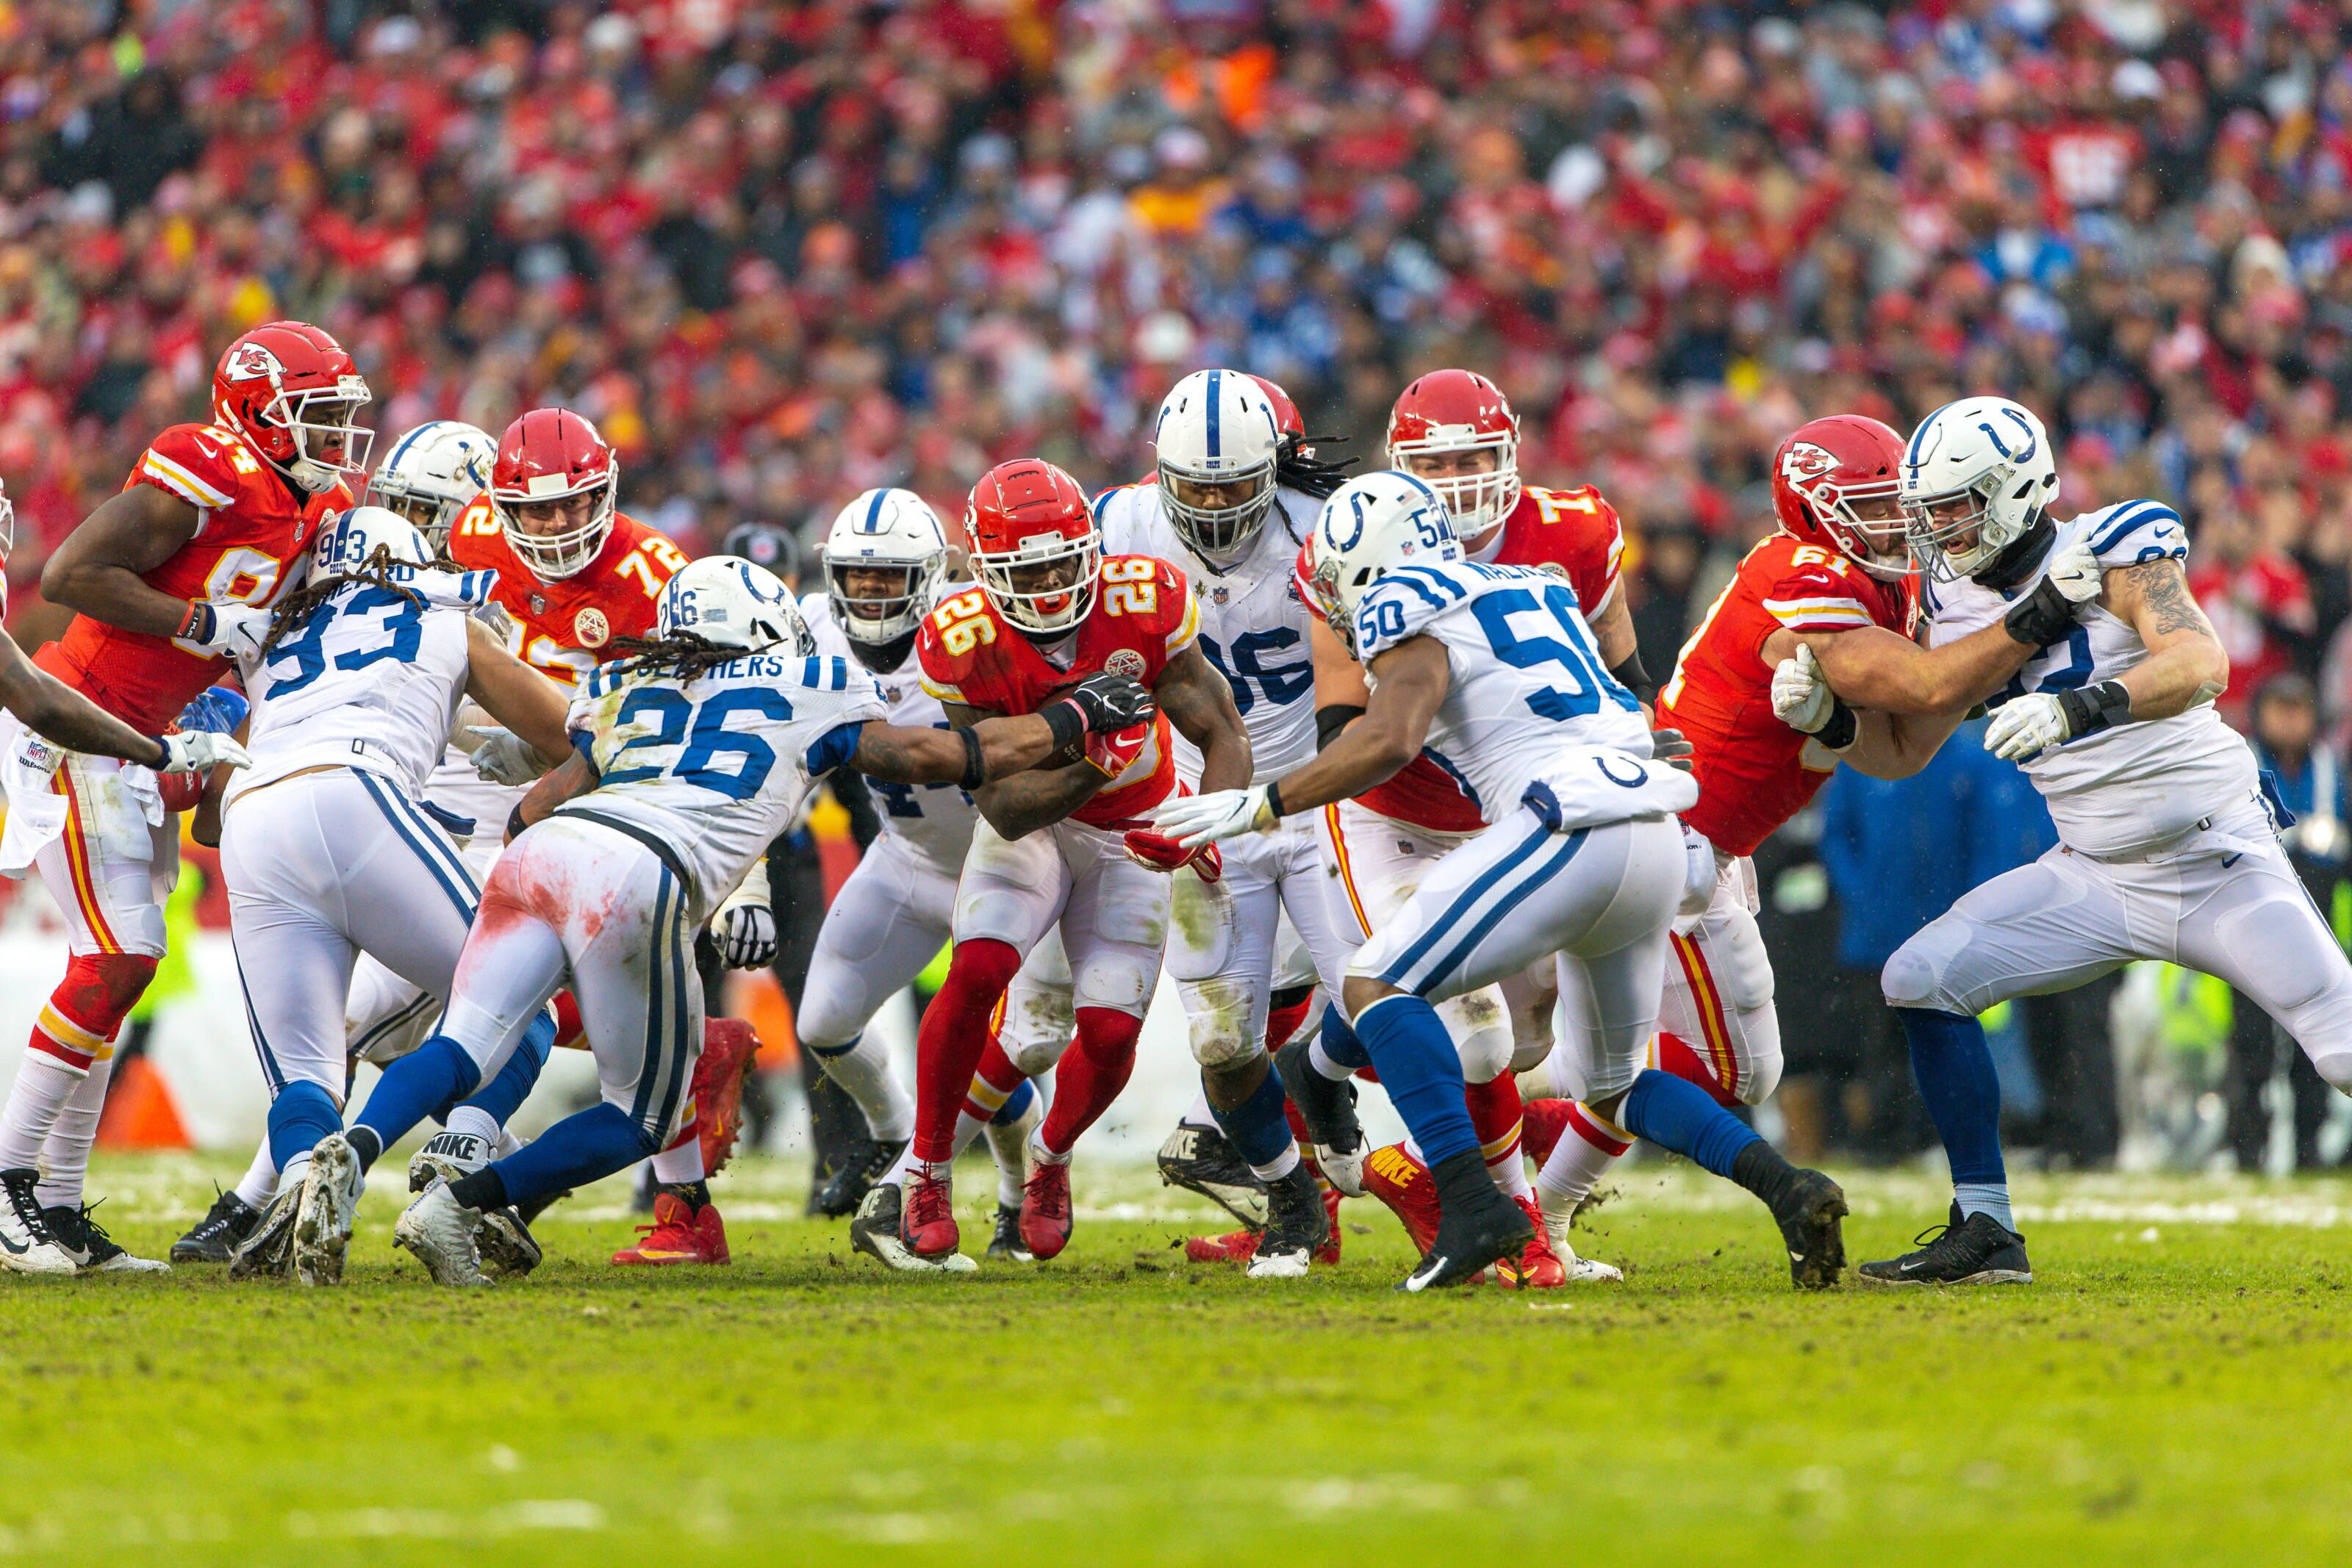 KANSAS CITY, MO - JANUARY 12: Kansas City Chiefs running back Damien Williams (26) looks for an opening during the NFL AFC Divisional Round playoff game against the Indianapolis Colts on January 12, 2019 at Arrowhead Stadium in Kansas City, Missouri. (Photo by William Purnell/Icon Sportswire via Getty Images)